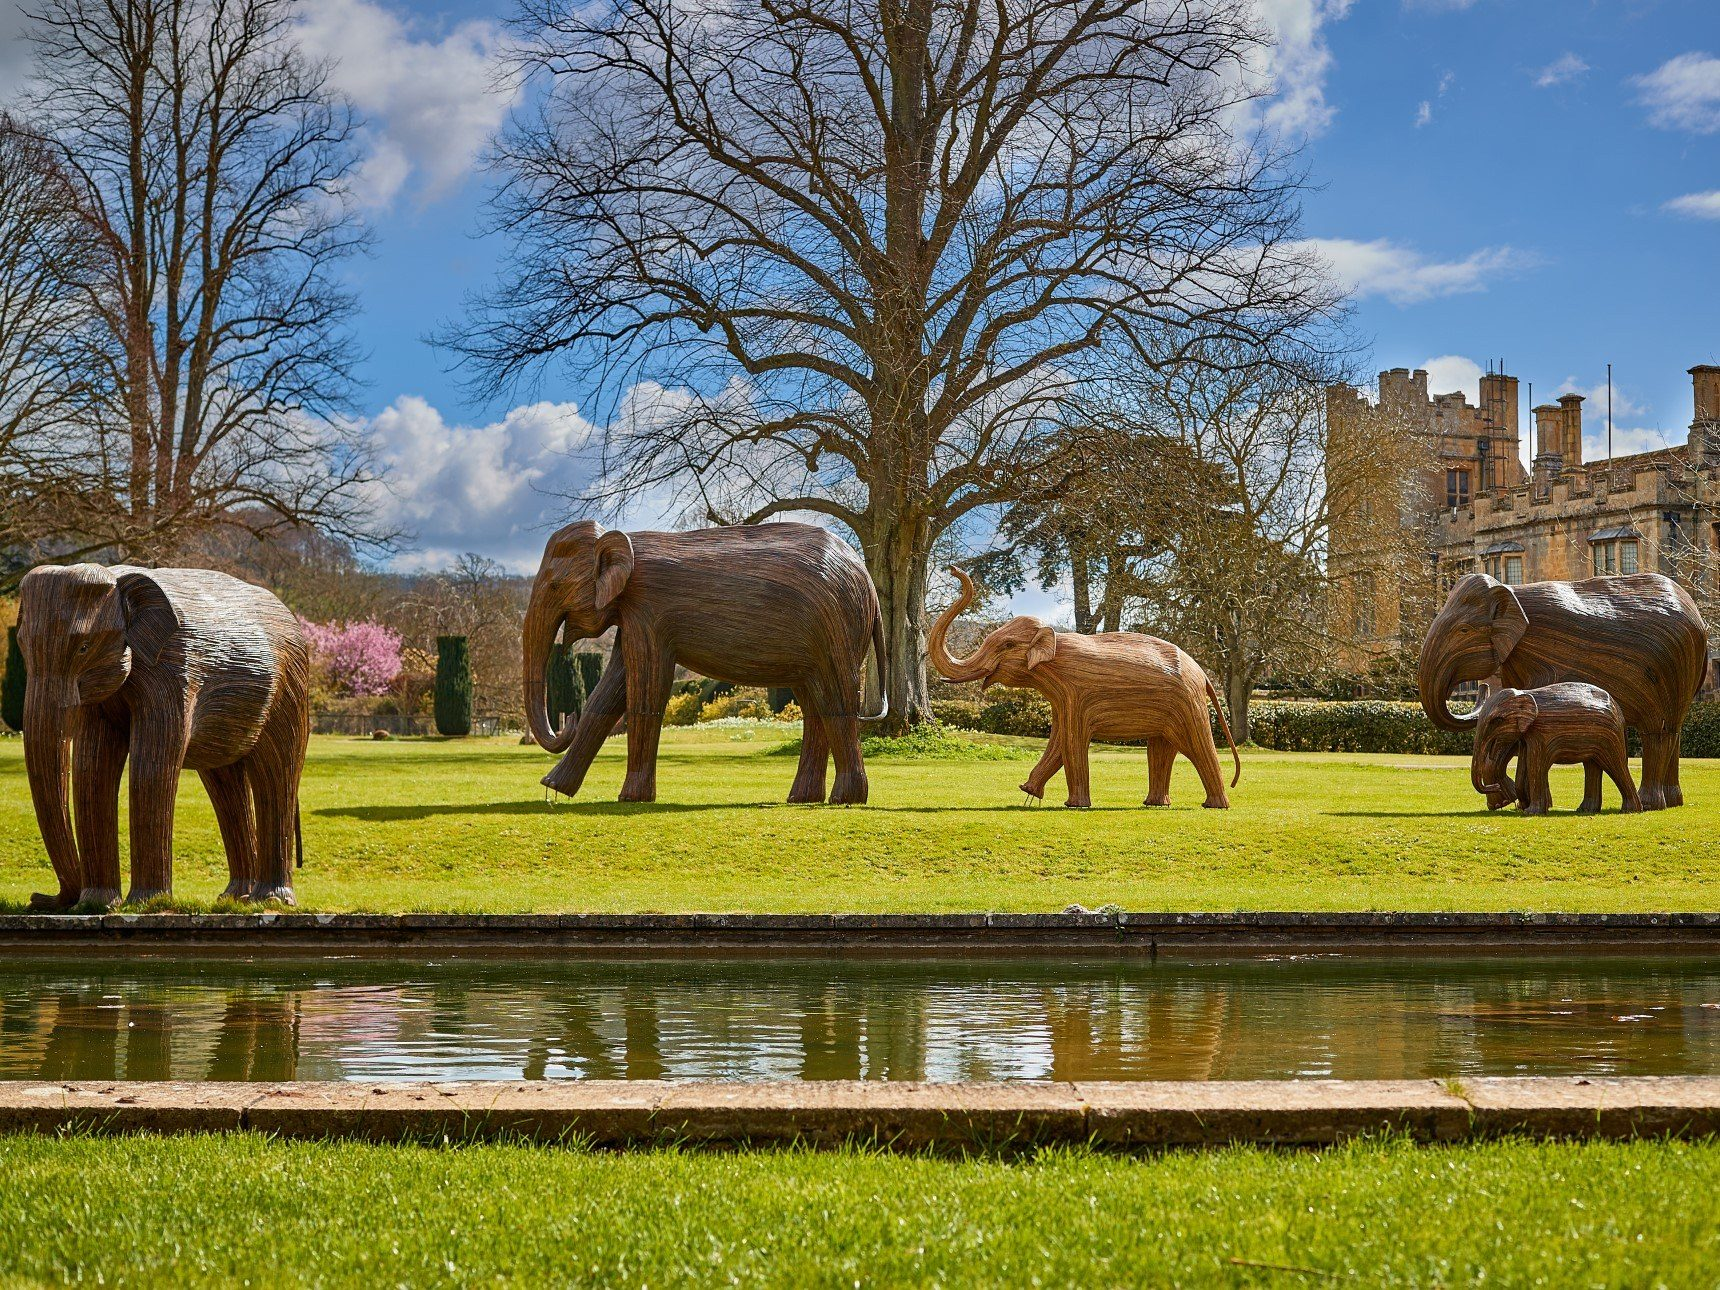 5 Elephant Sculptures in position walking across castle lawn